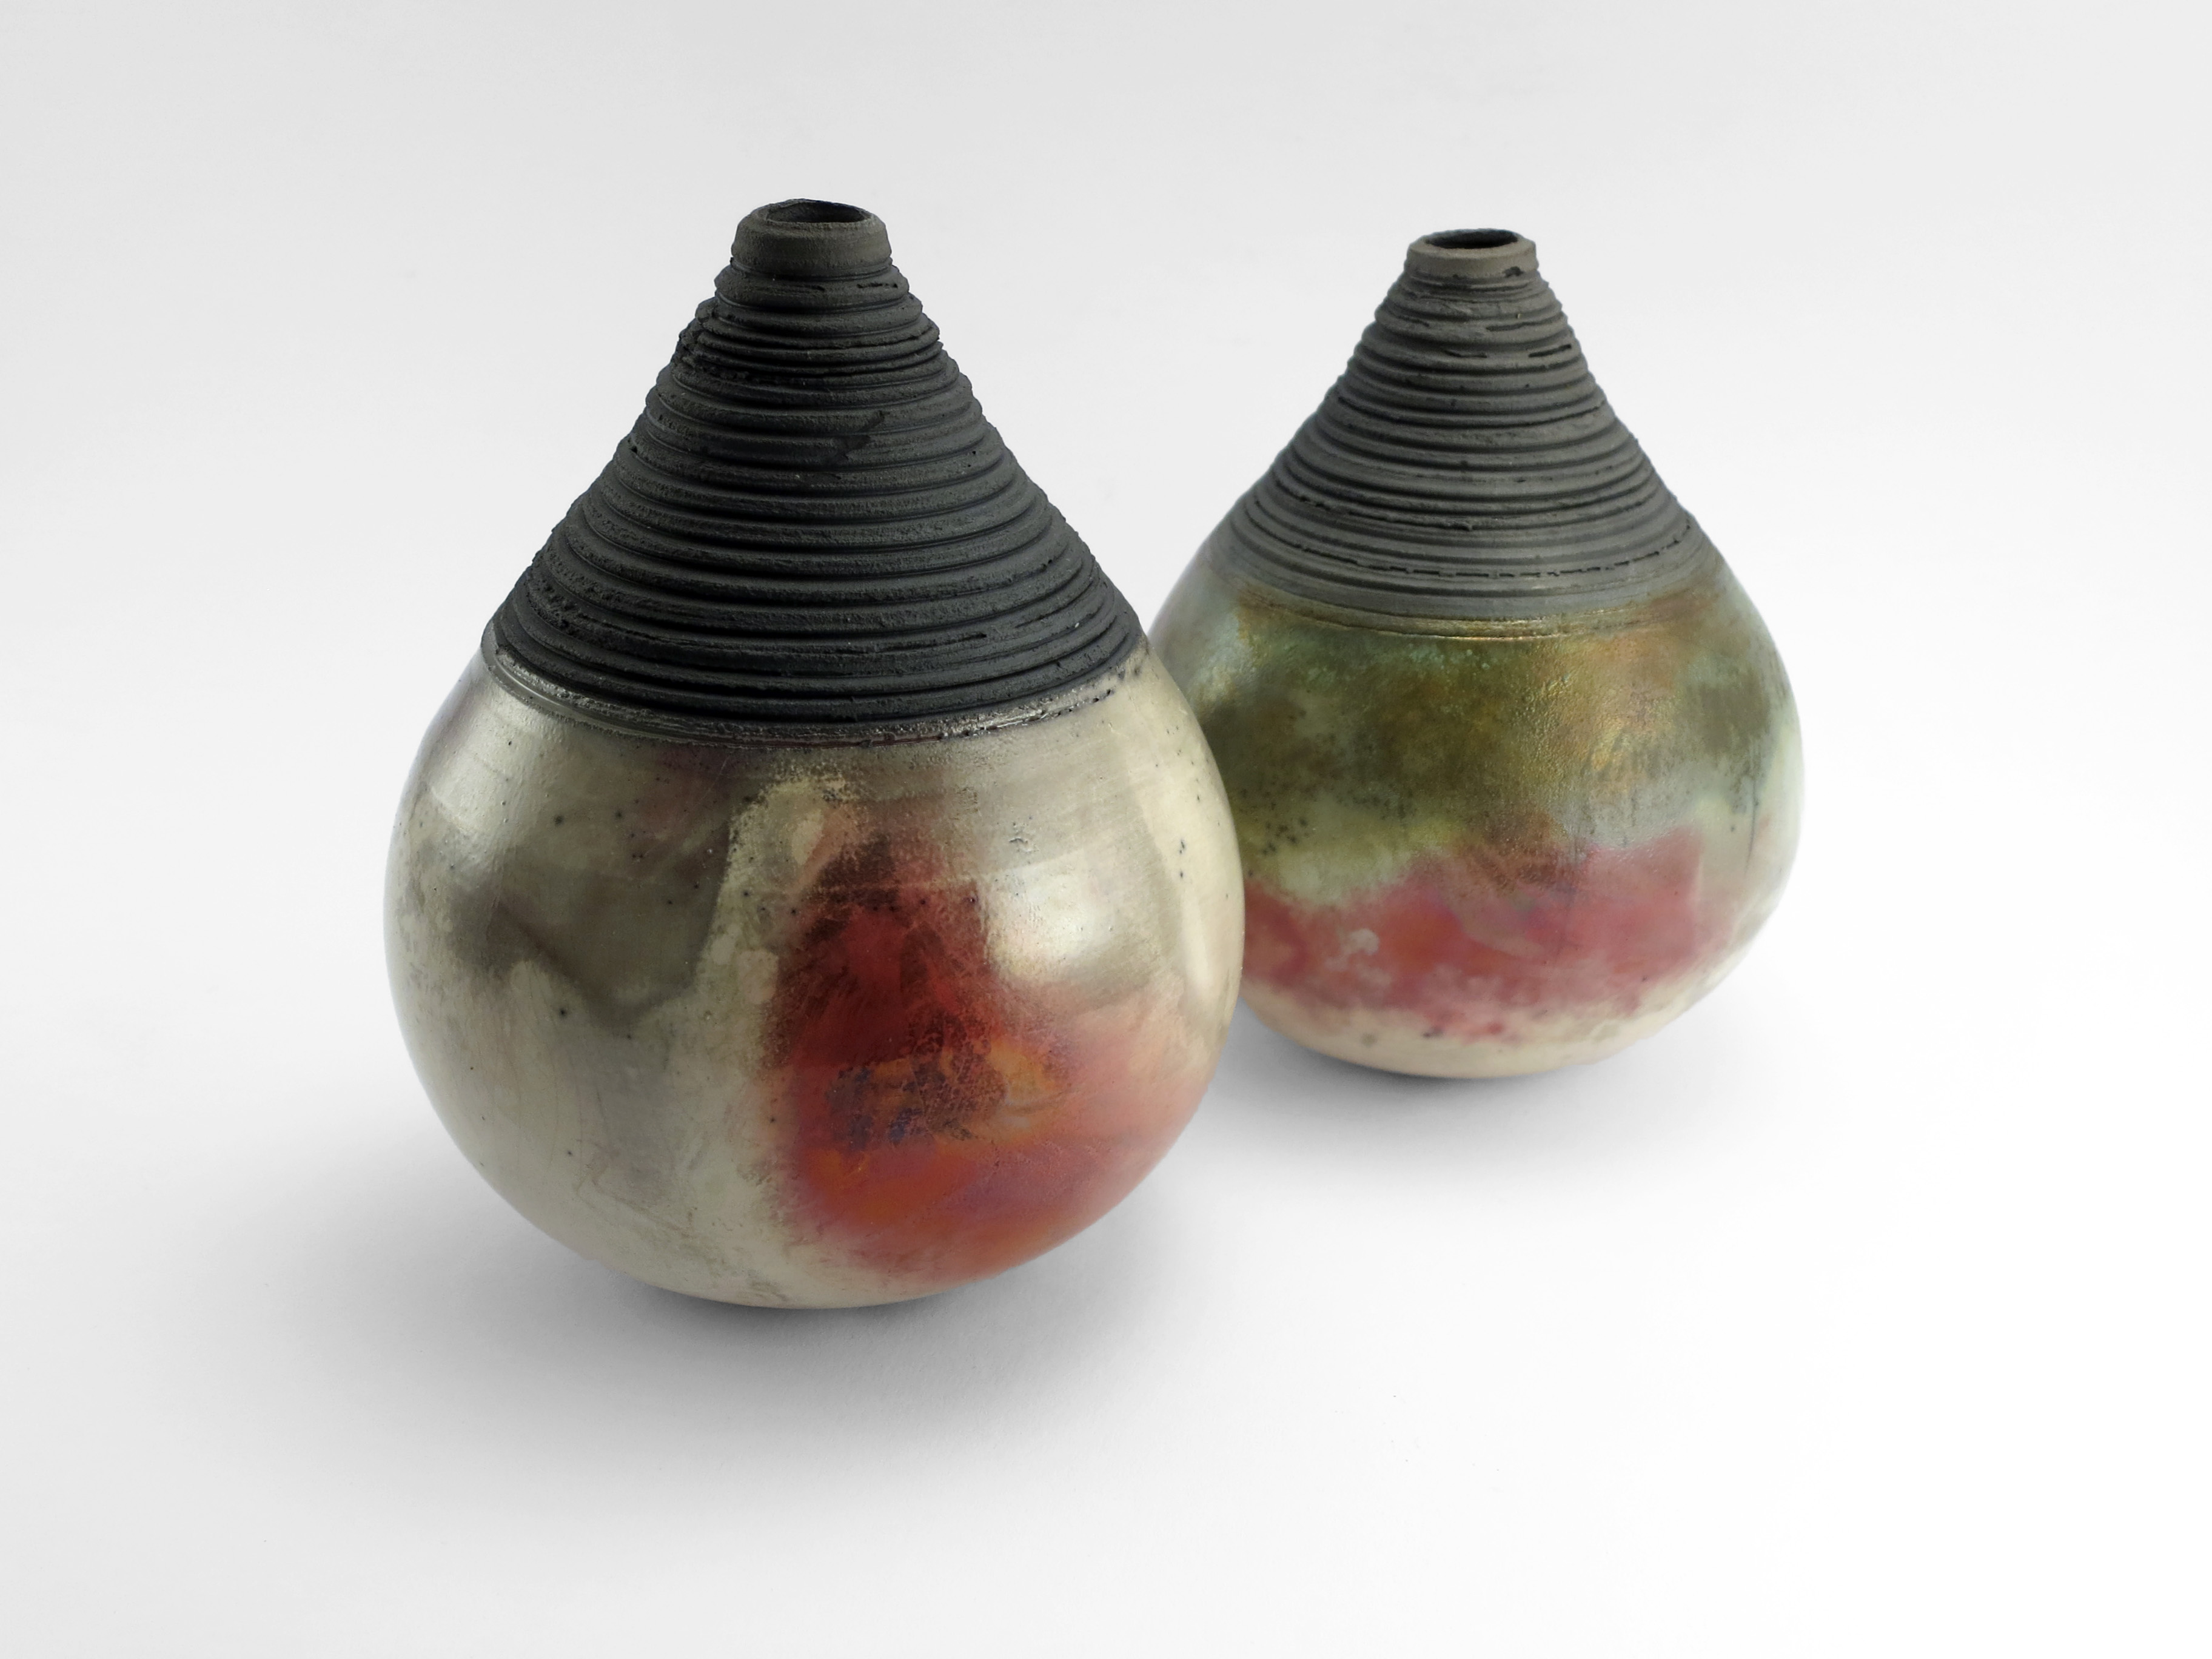 Copper Kiss: Whispering Globes from the Under the Surface Series - Ildikó Károlyi